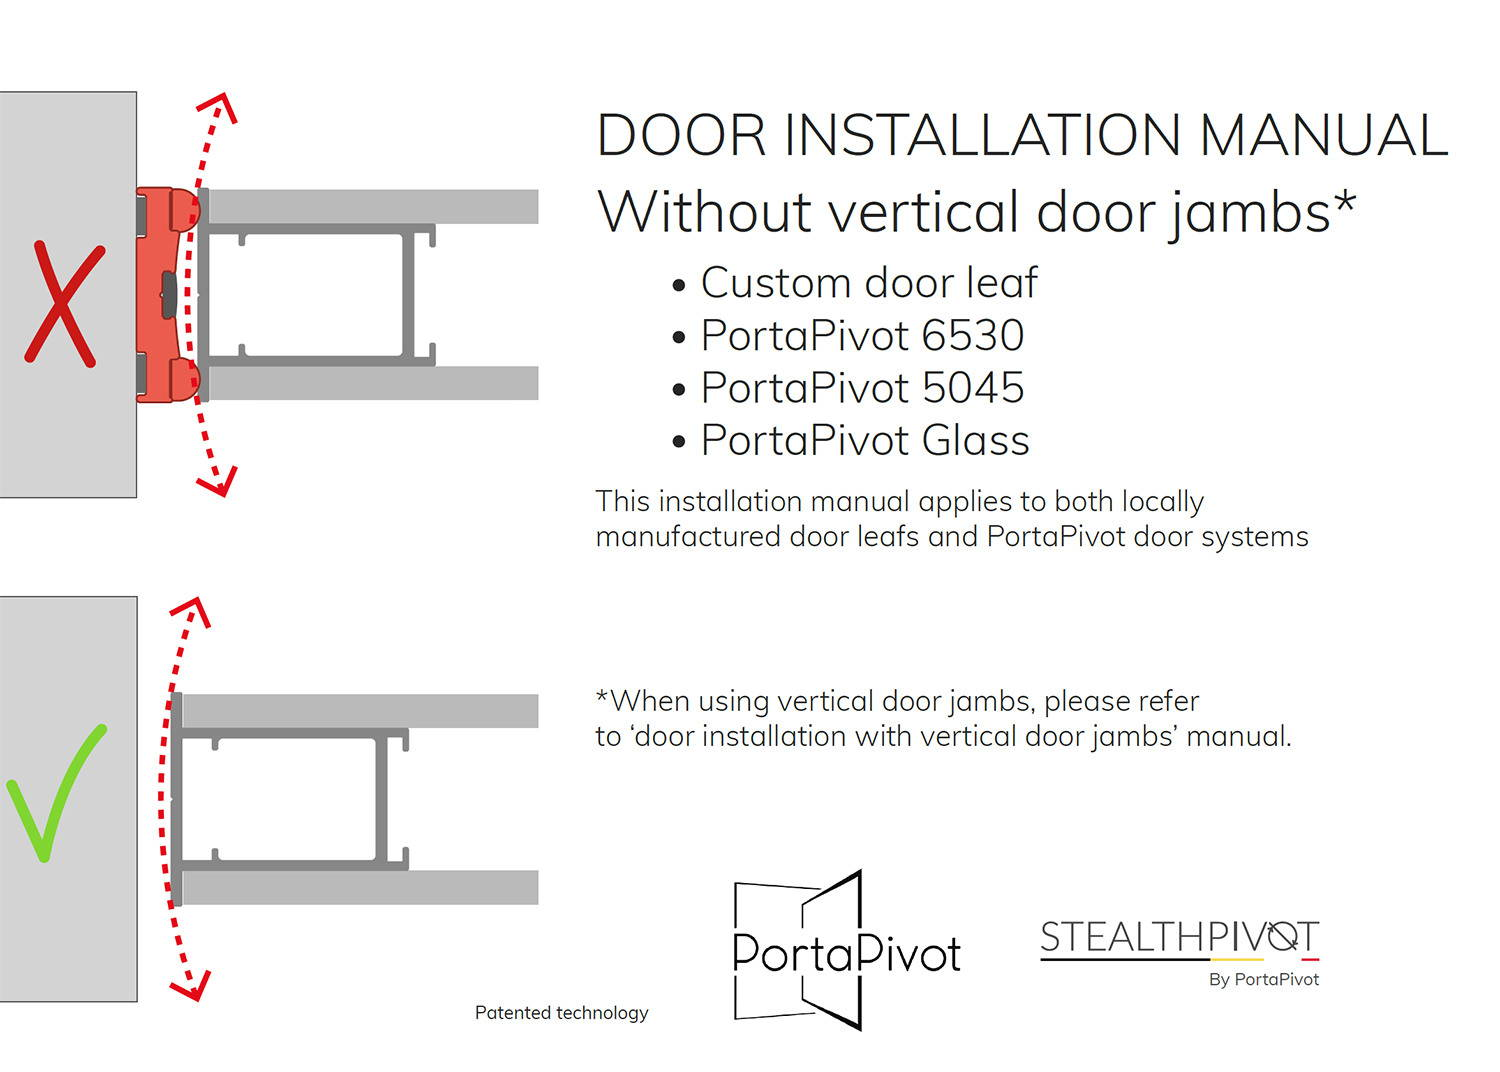 Portapivot Glass installation manual